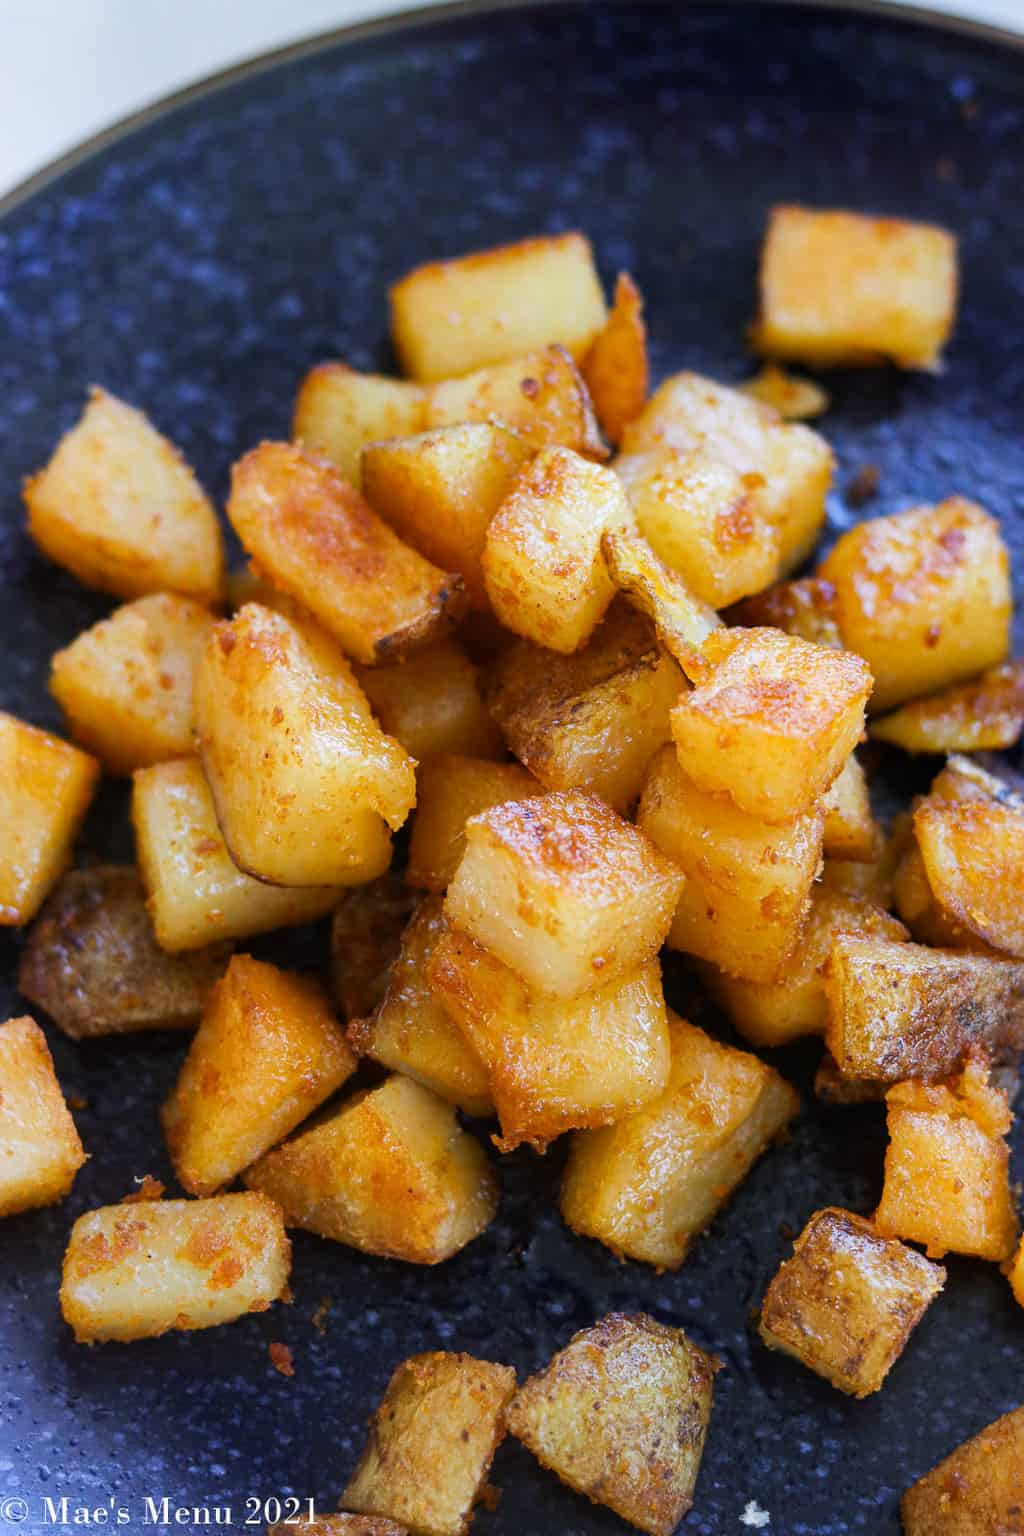 an up-close shot of home fries on a blue plate